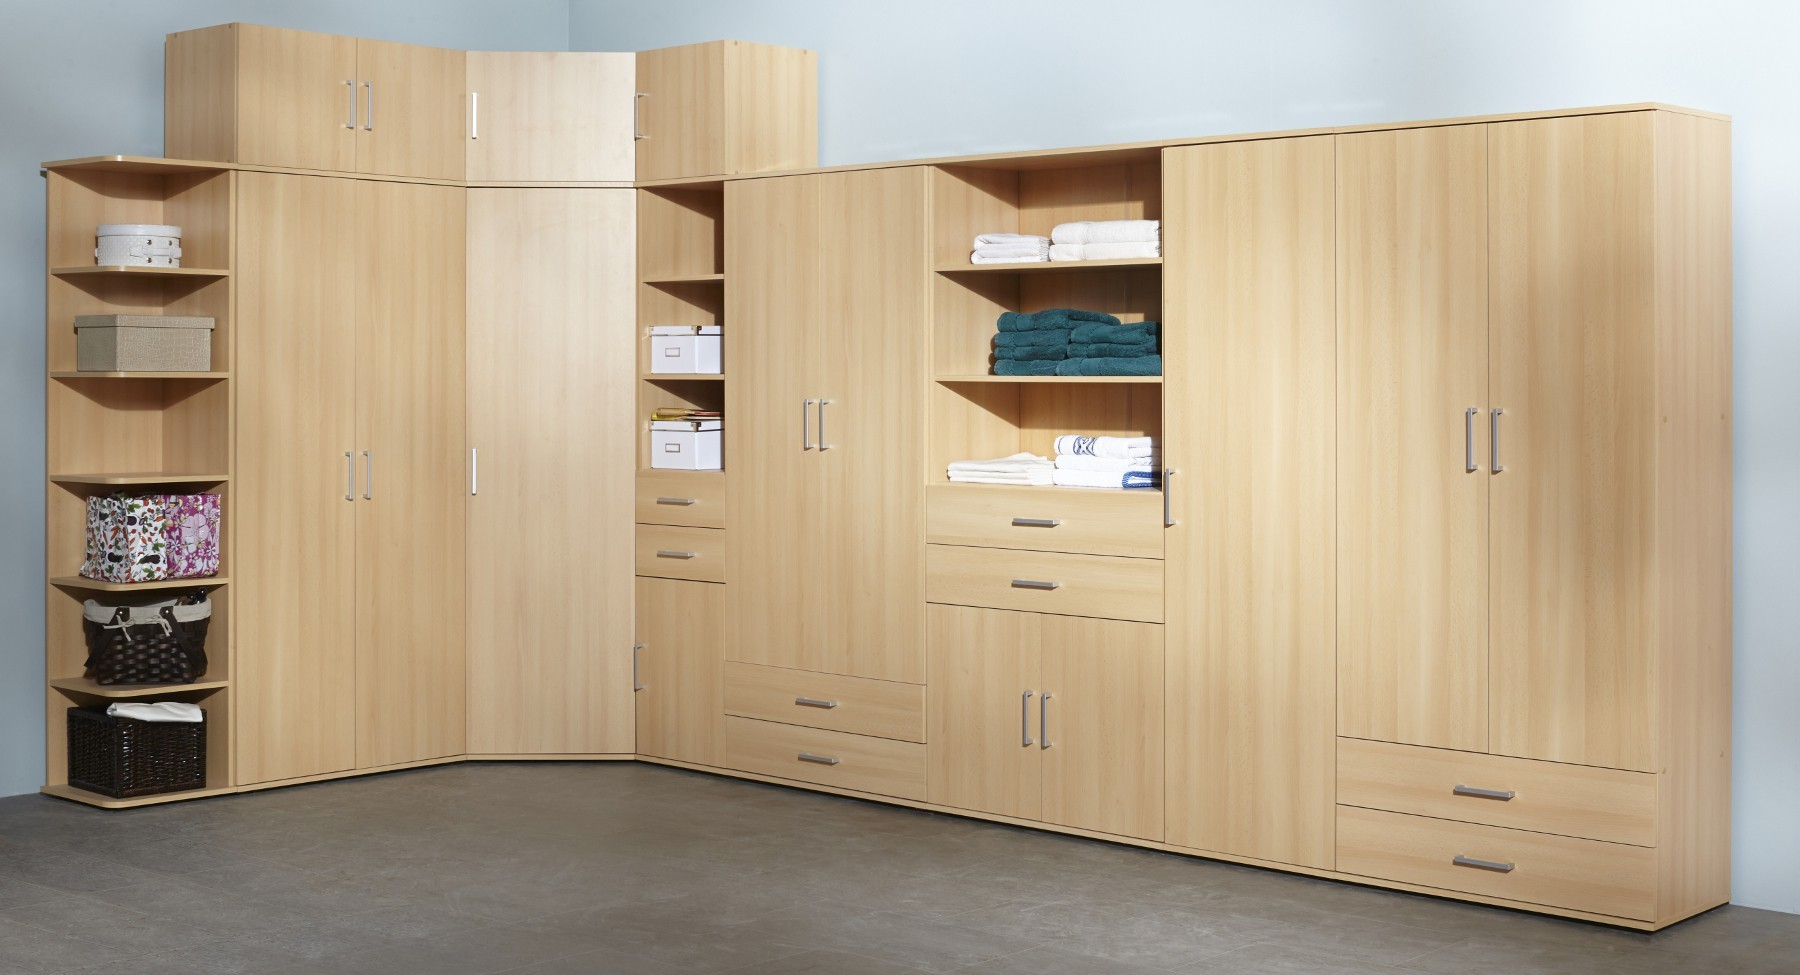 aufbewahrungsschrank mehrzweckschrank ronny hochschrank 40cm buche ebay. Black Bedroom Furniture Sets. Home Design Ideas